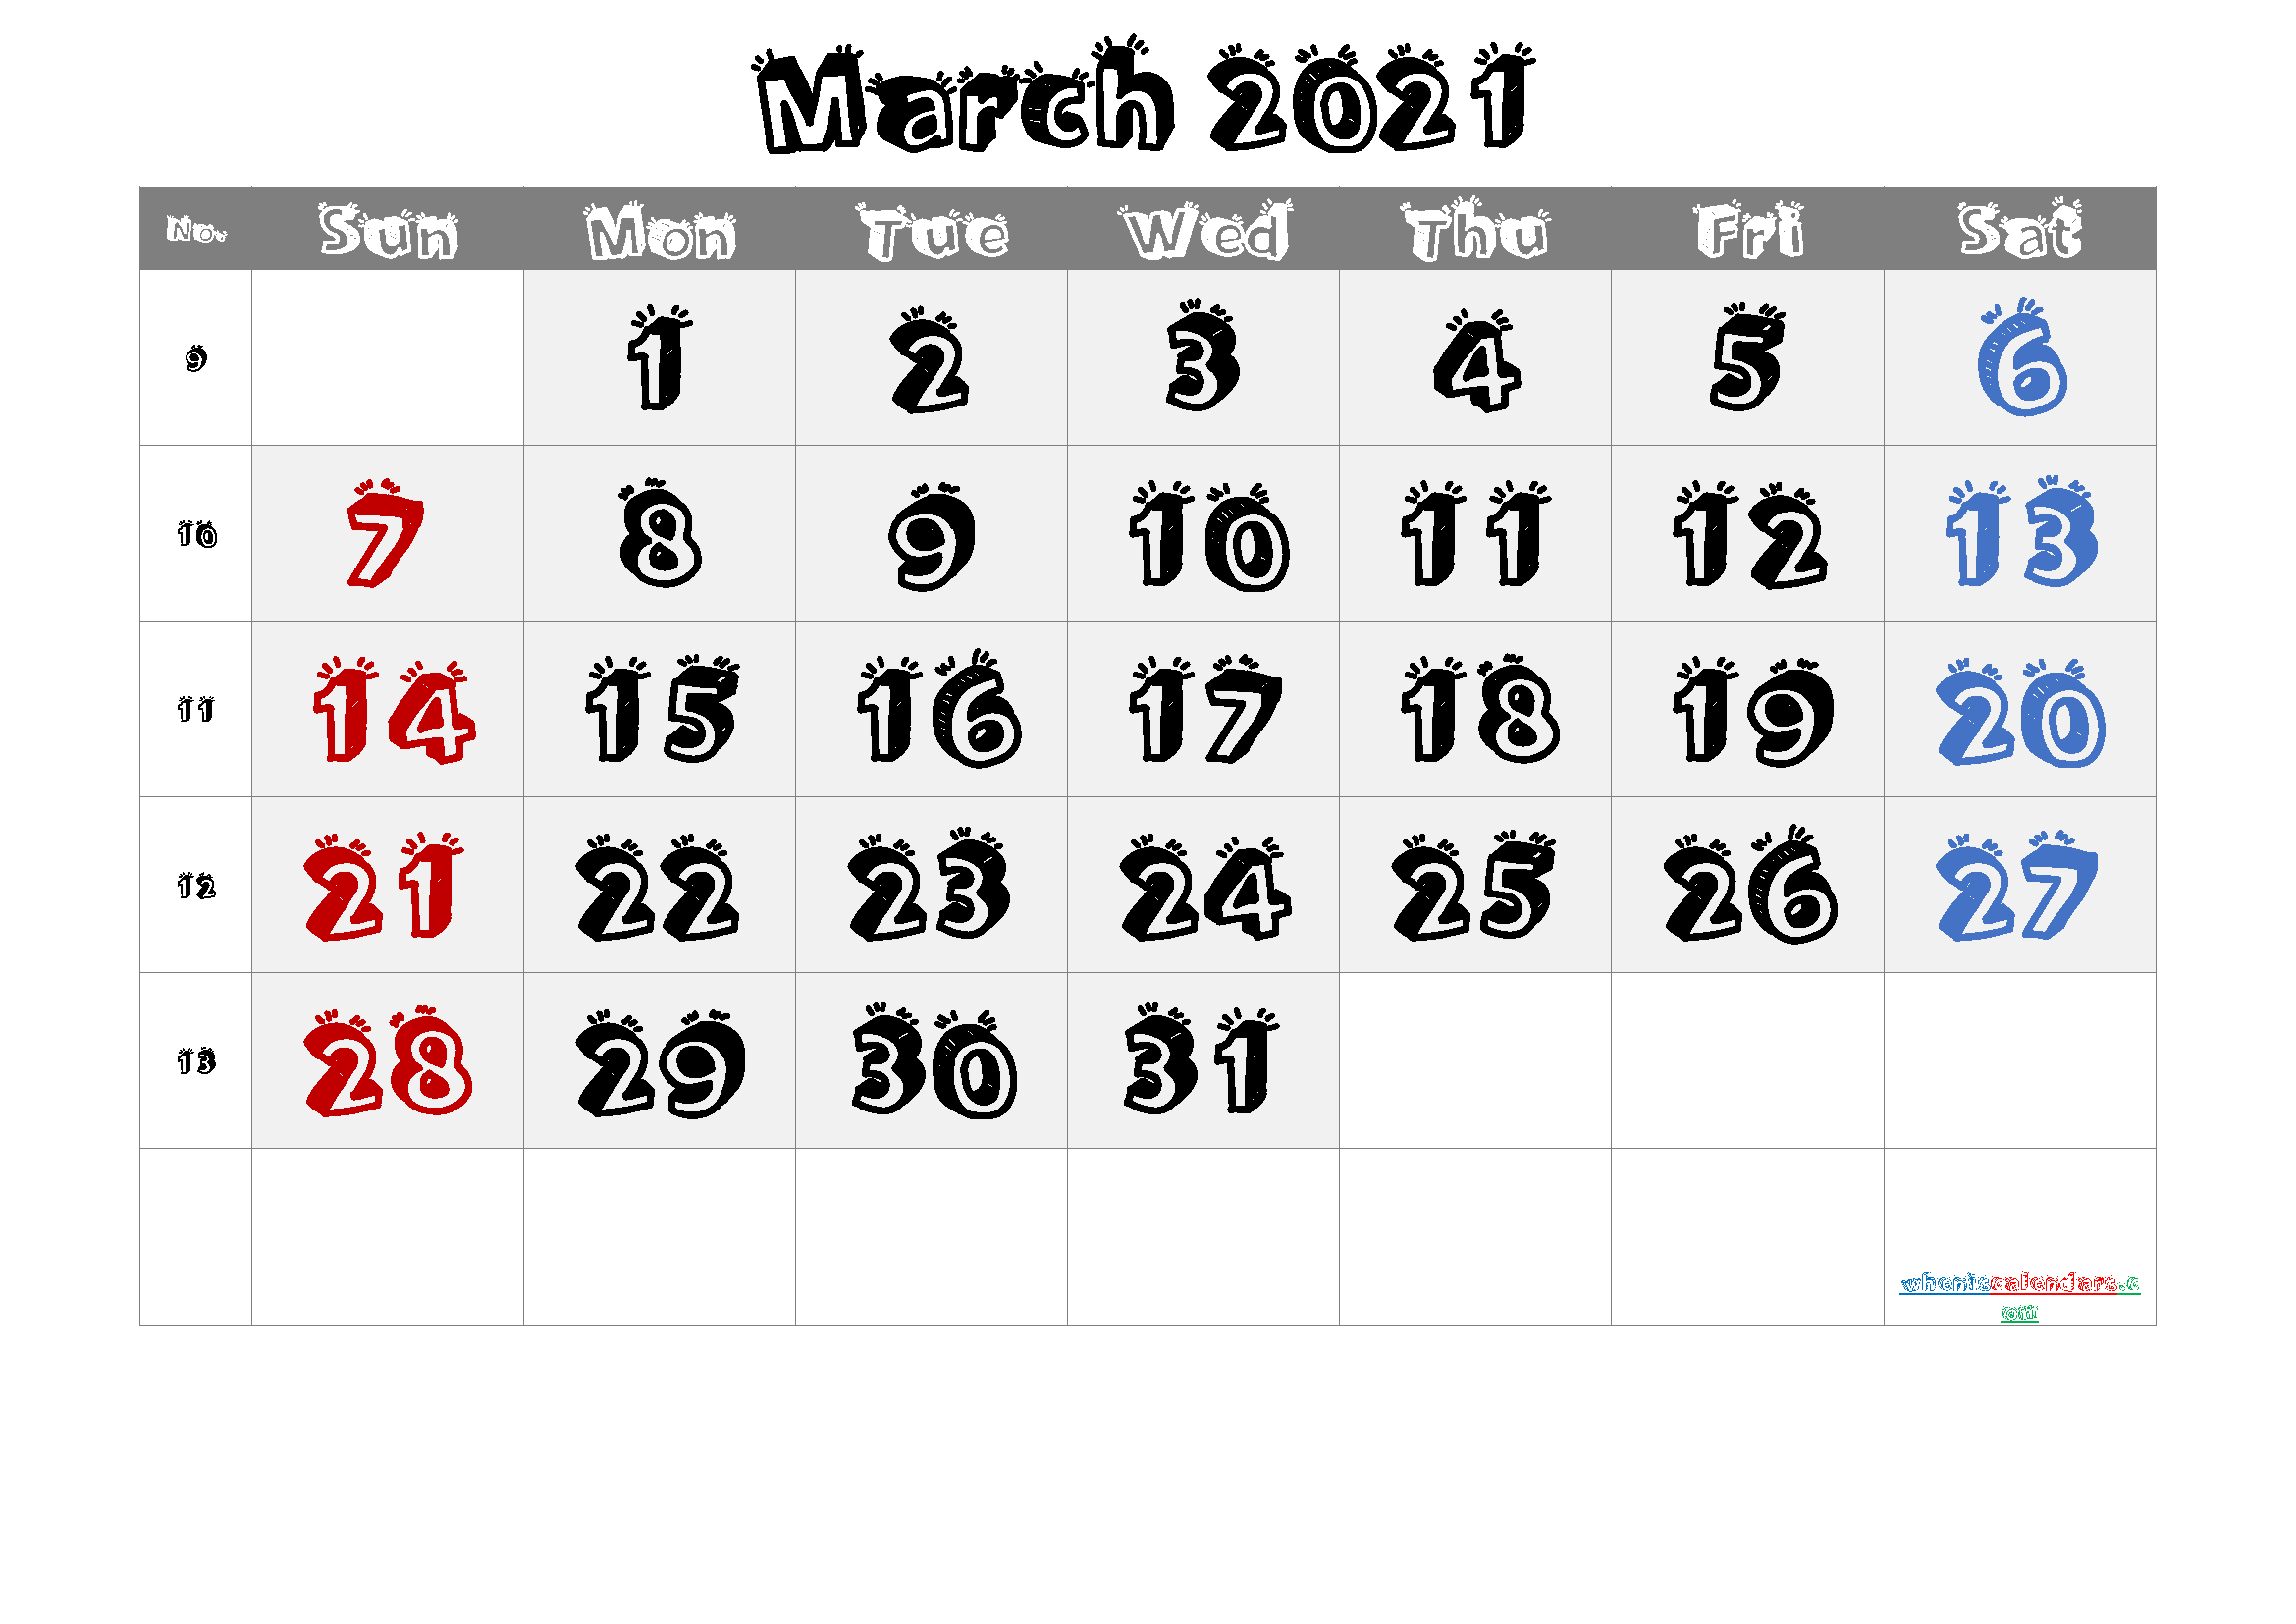 March 2021 Printable Calendar with Week Numbers